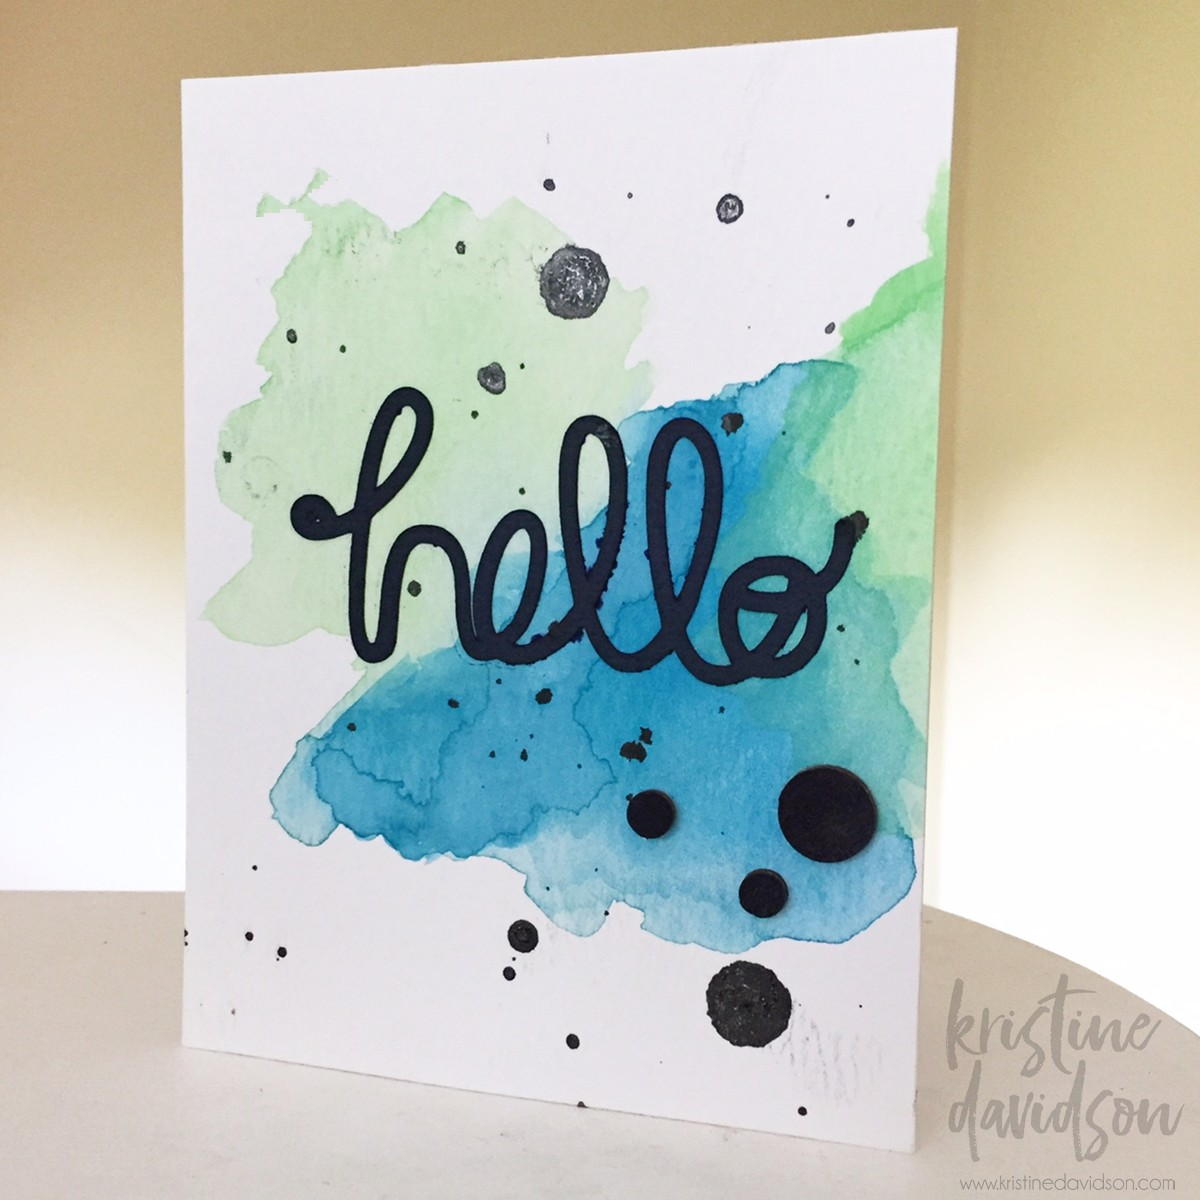 ... And Created This Simple Card Using Paint, A Cut Out Hello Using My  Silhouette And A Few Wood Dots Painted In Black To Add Some Details To My  Card.